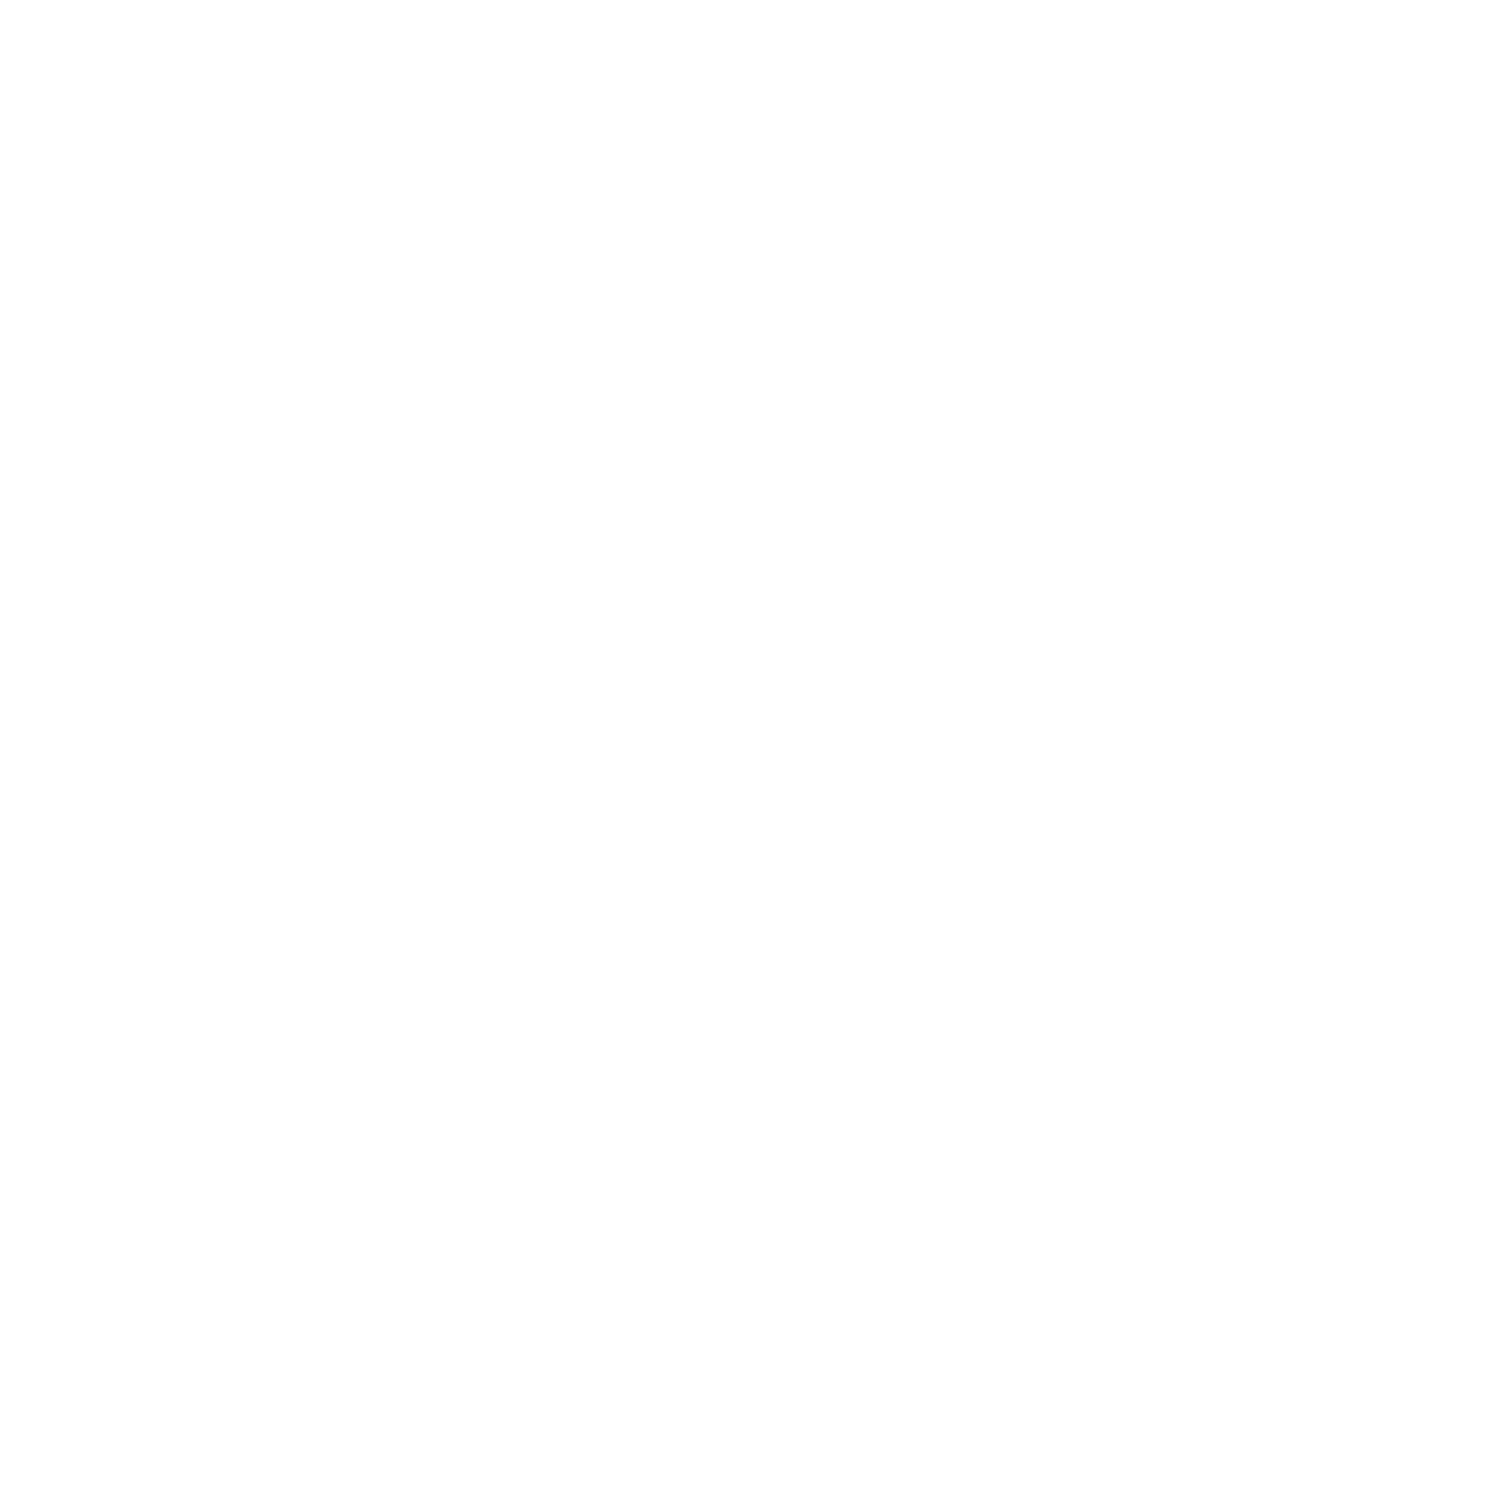 Austin Hatcher Visuals